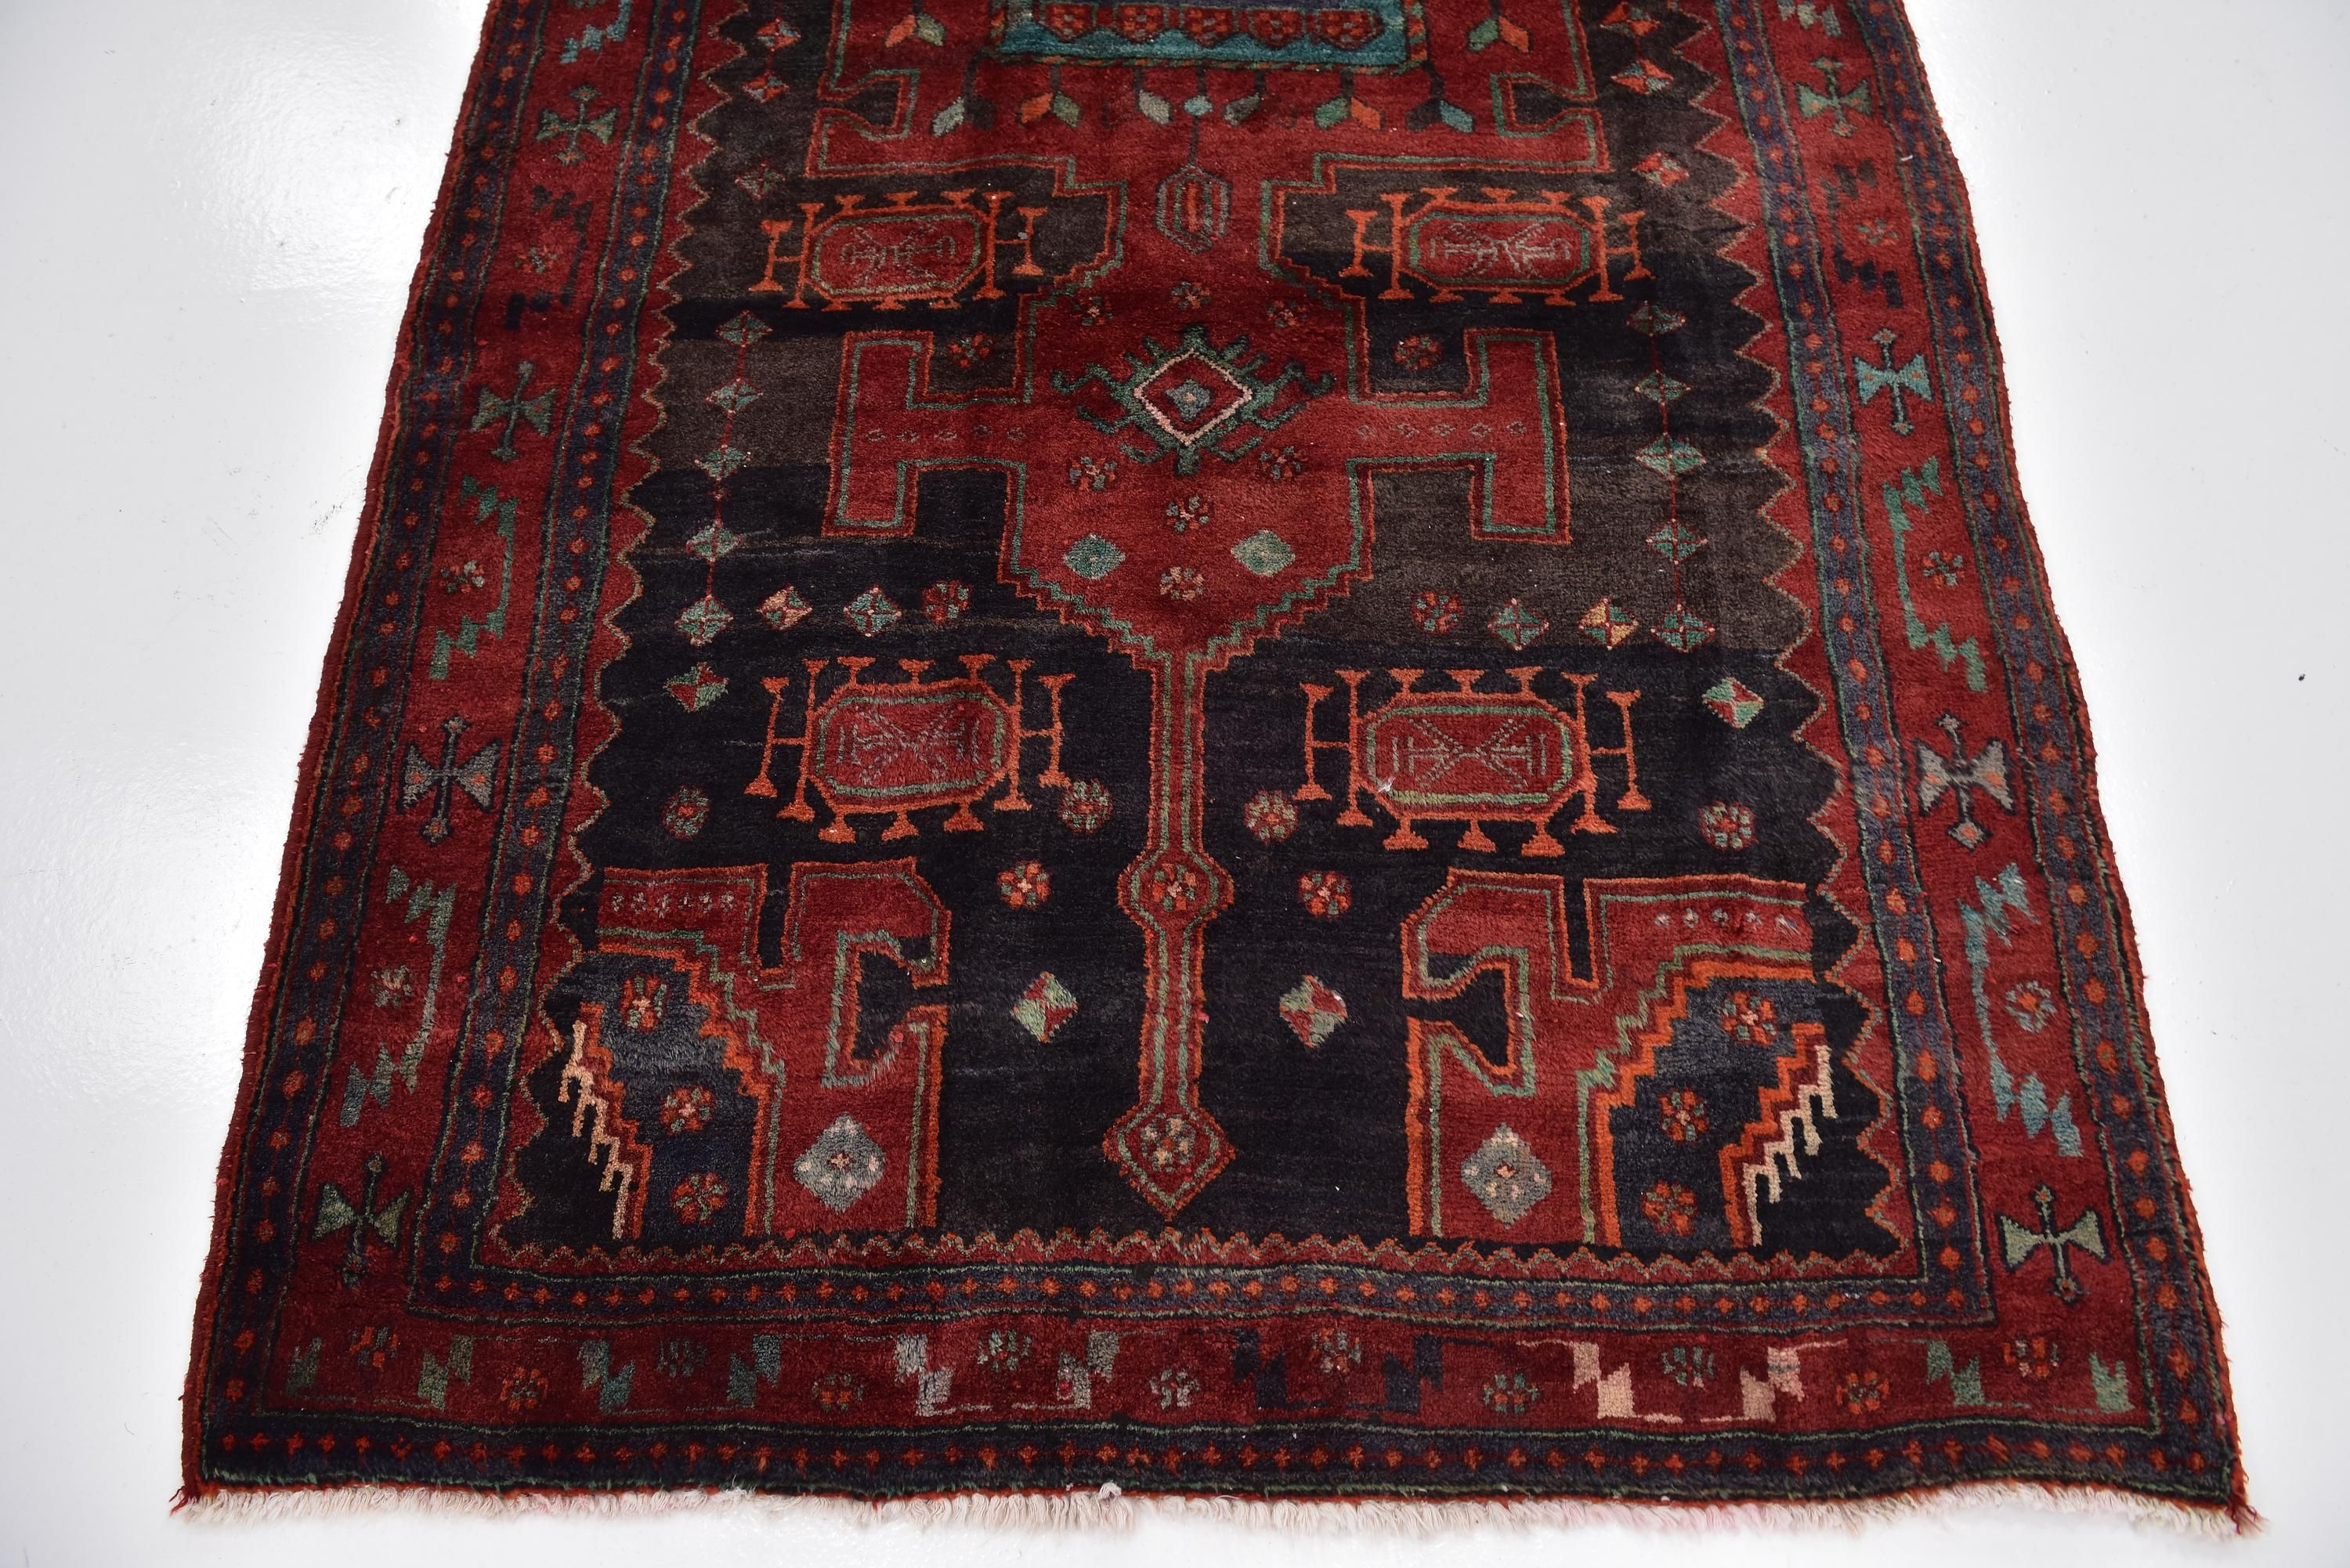 Red 4 10 X 10 8 Meshkin Persian Runner Rug Sponsored Meshkin Red Rug Runner Persian Sponsored Persian Rug Runners Rugs Rug Runner